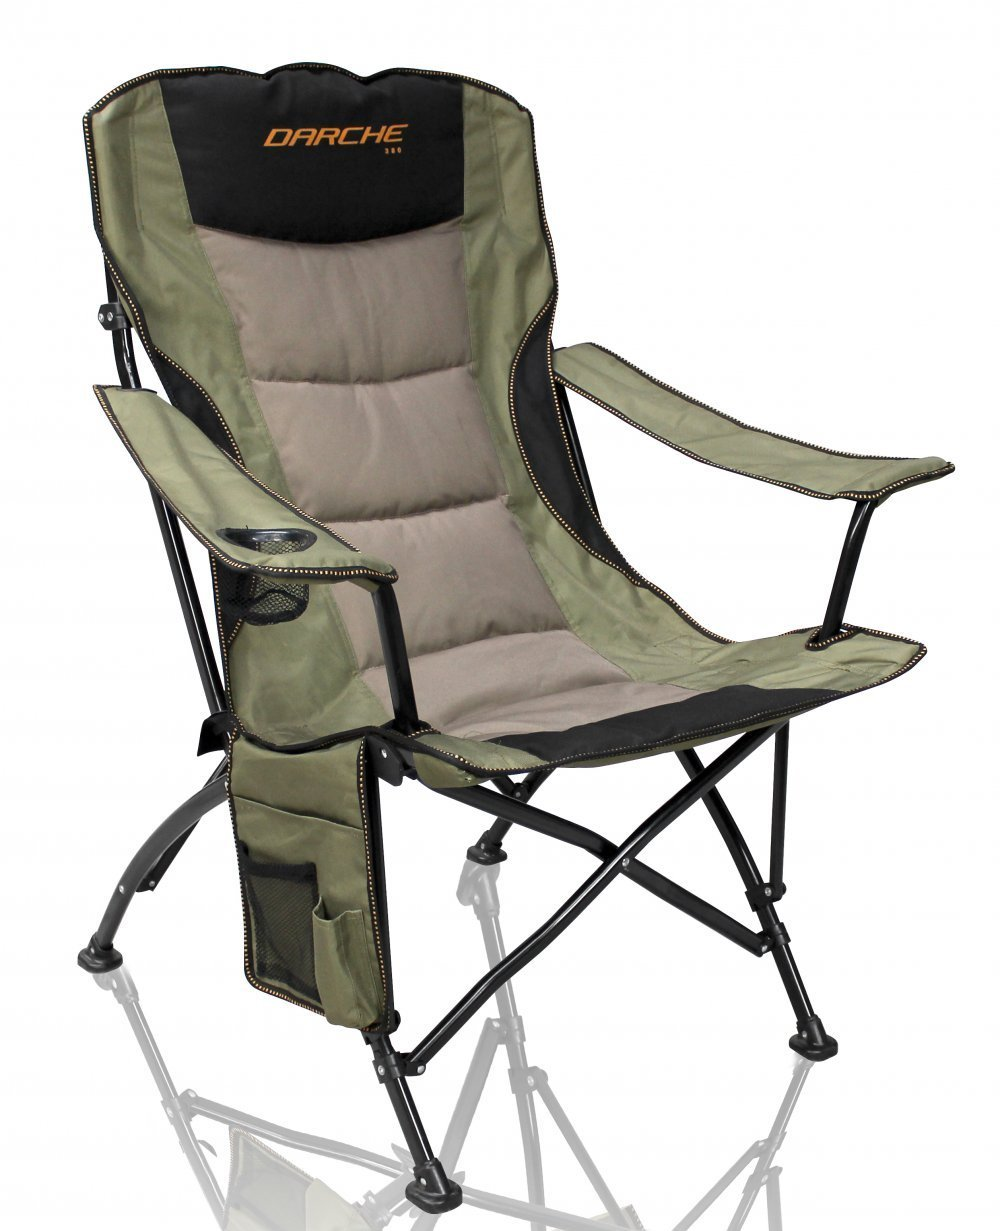 Darche Camping Chair